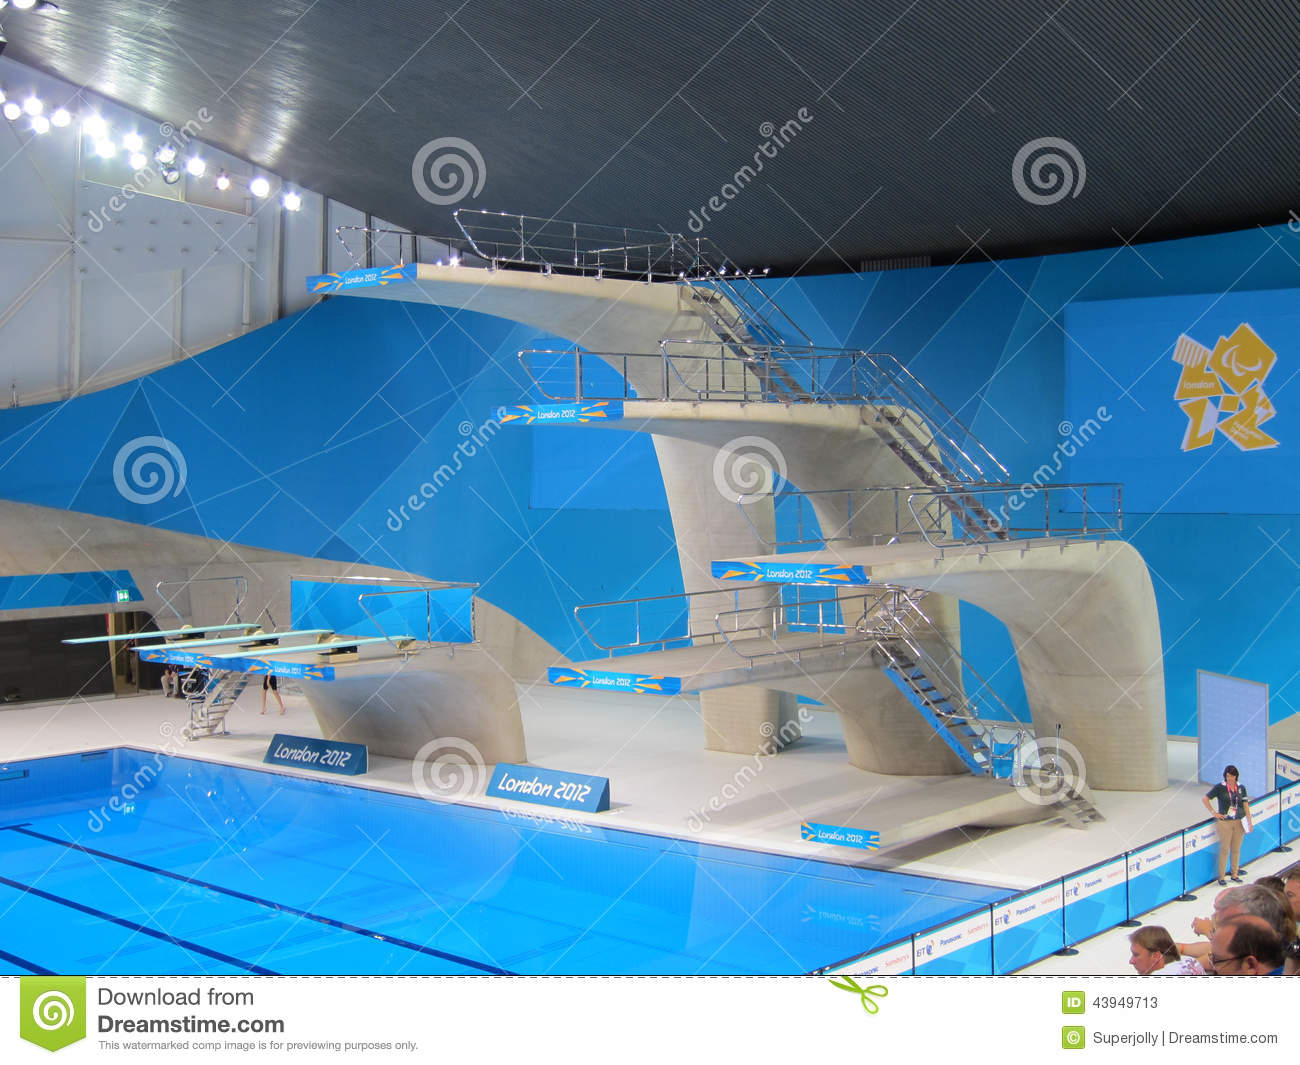 2012 london olympics diving high dive board editorial for Piscine olympique